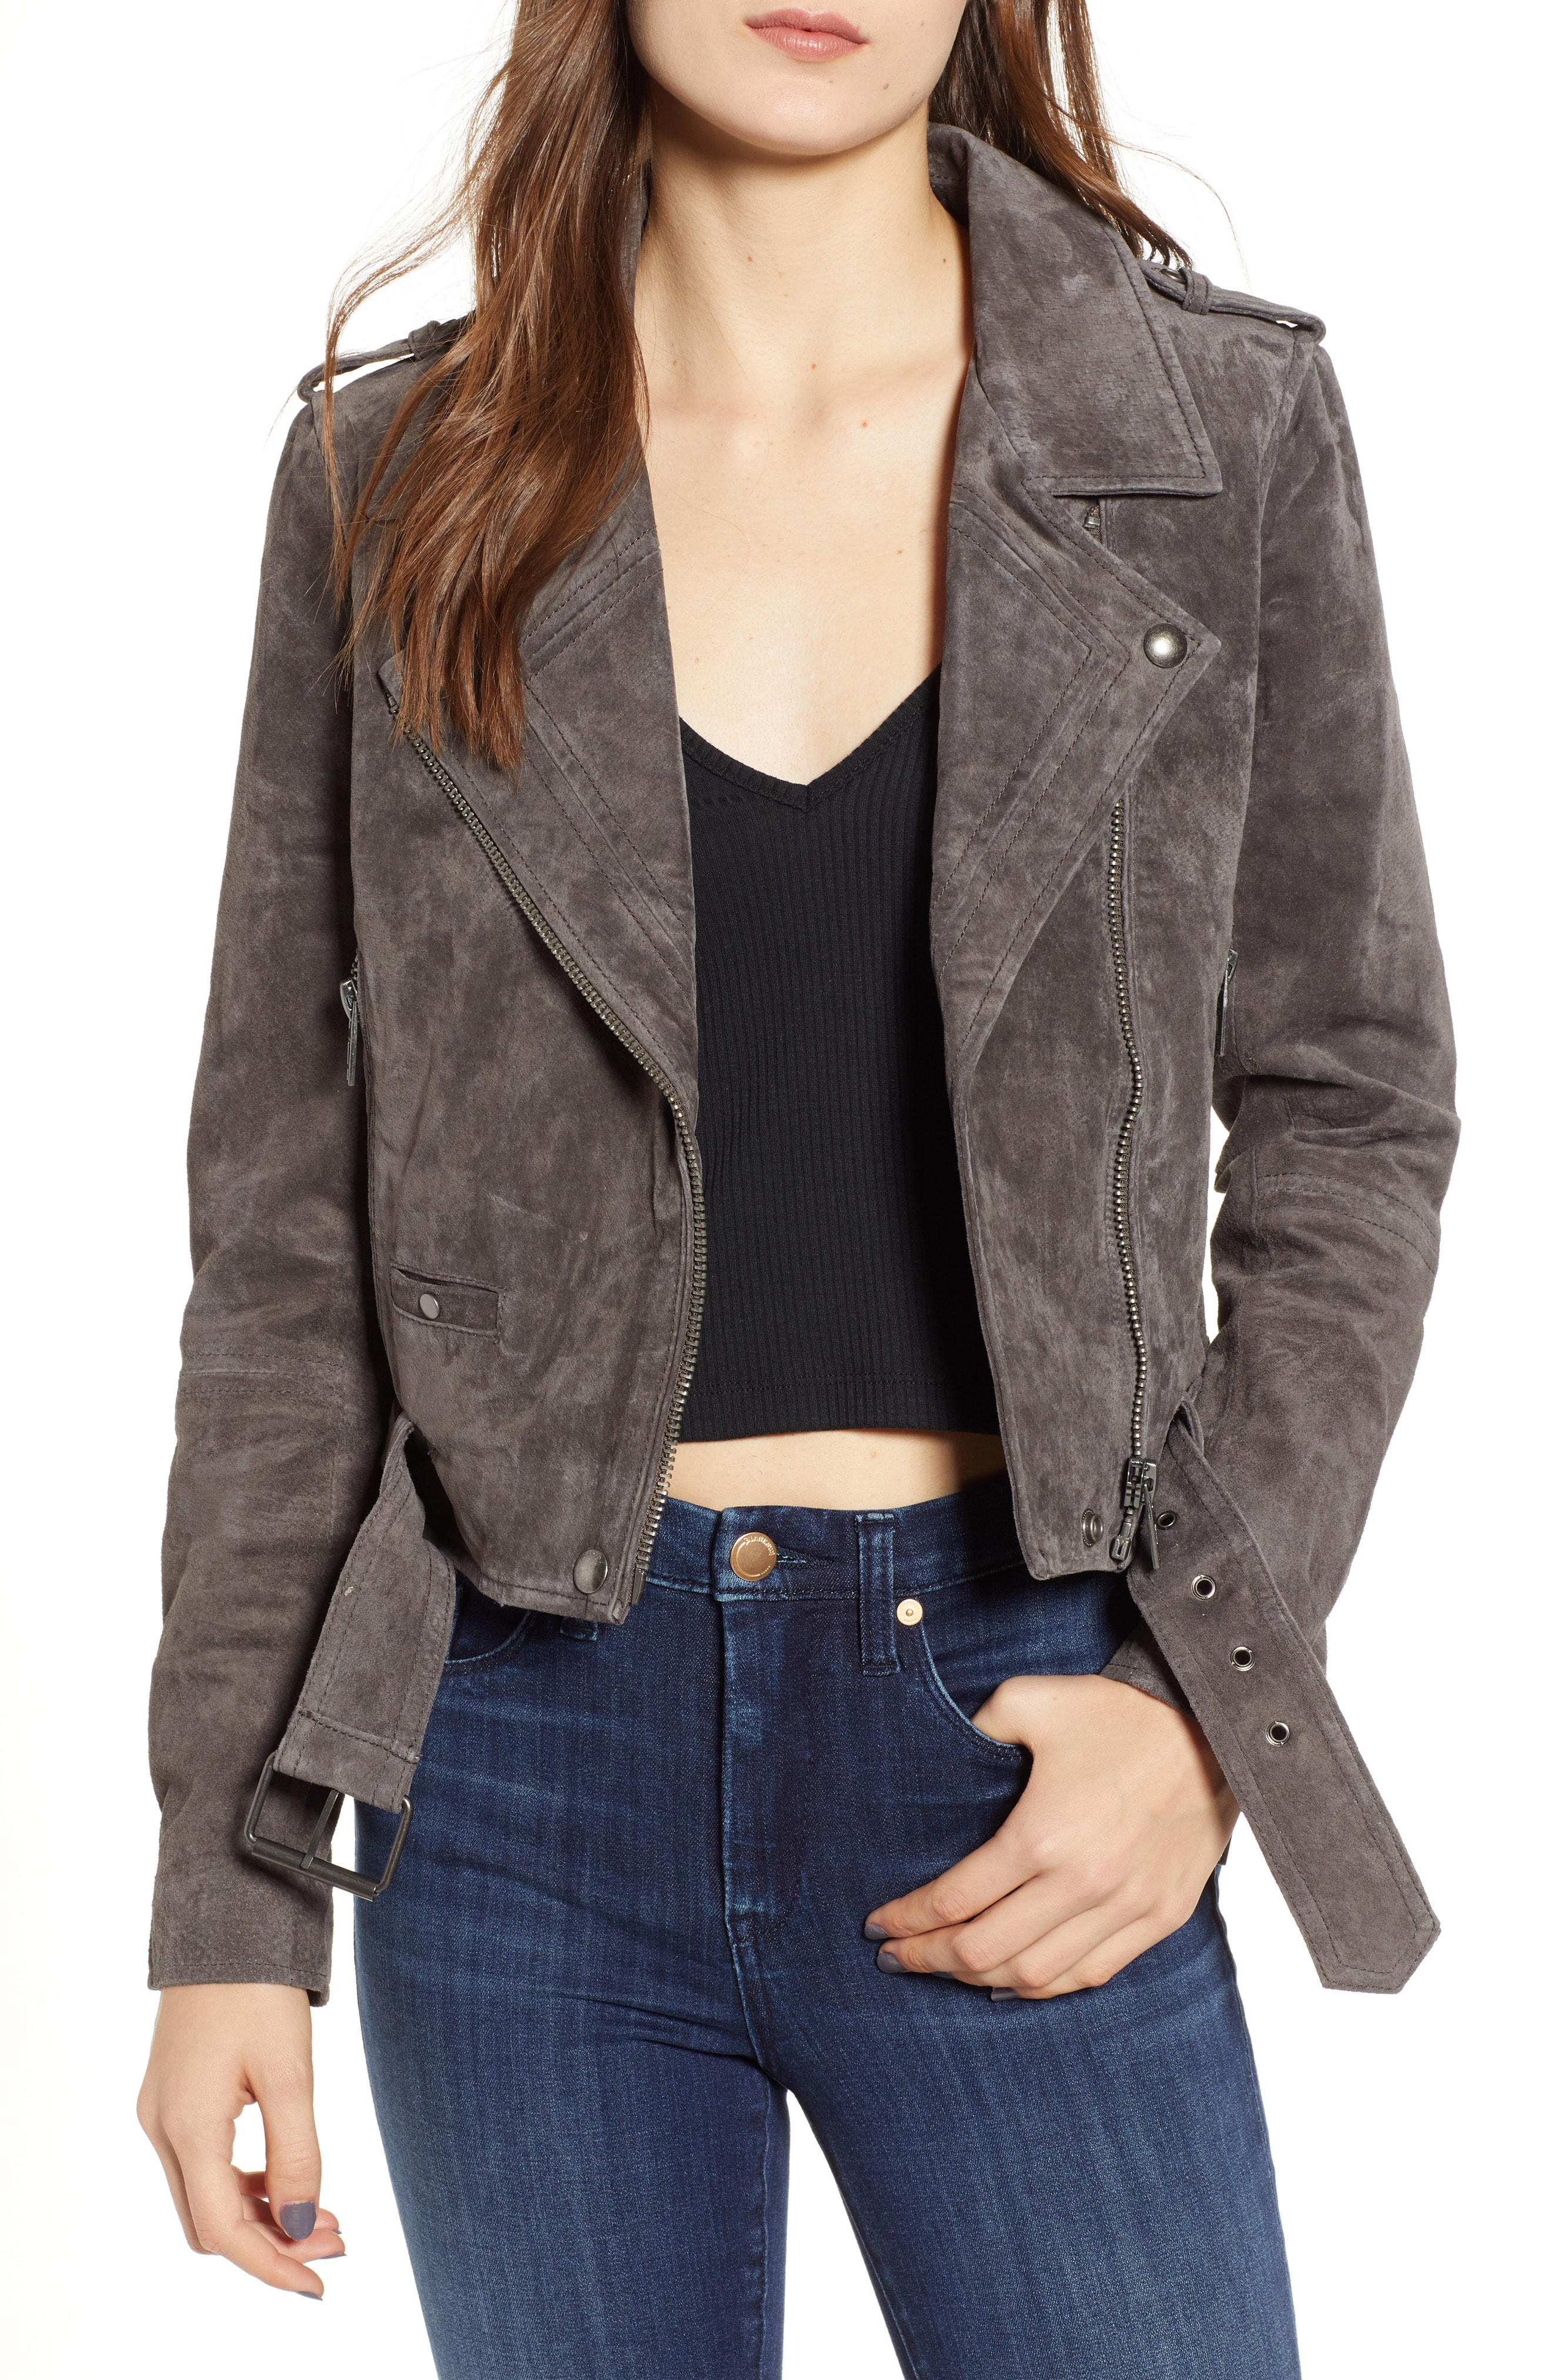 Women's Leather & Faux Leather Coats & Jackets | Nordstrom